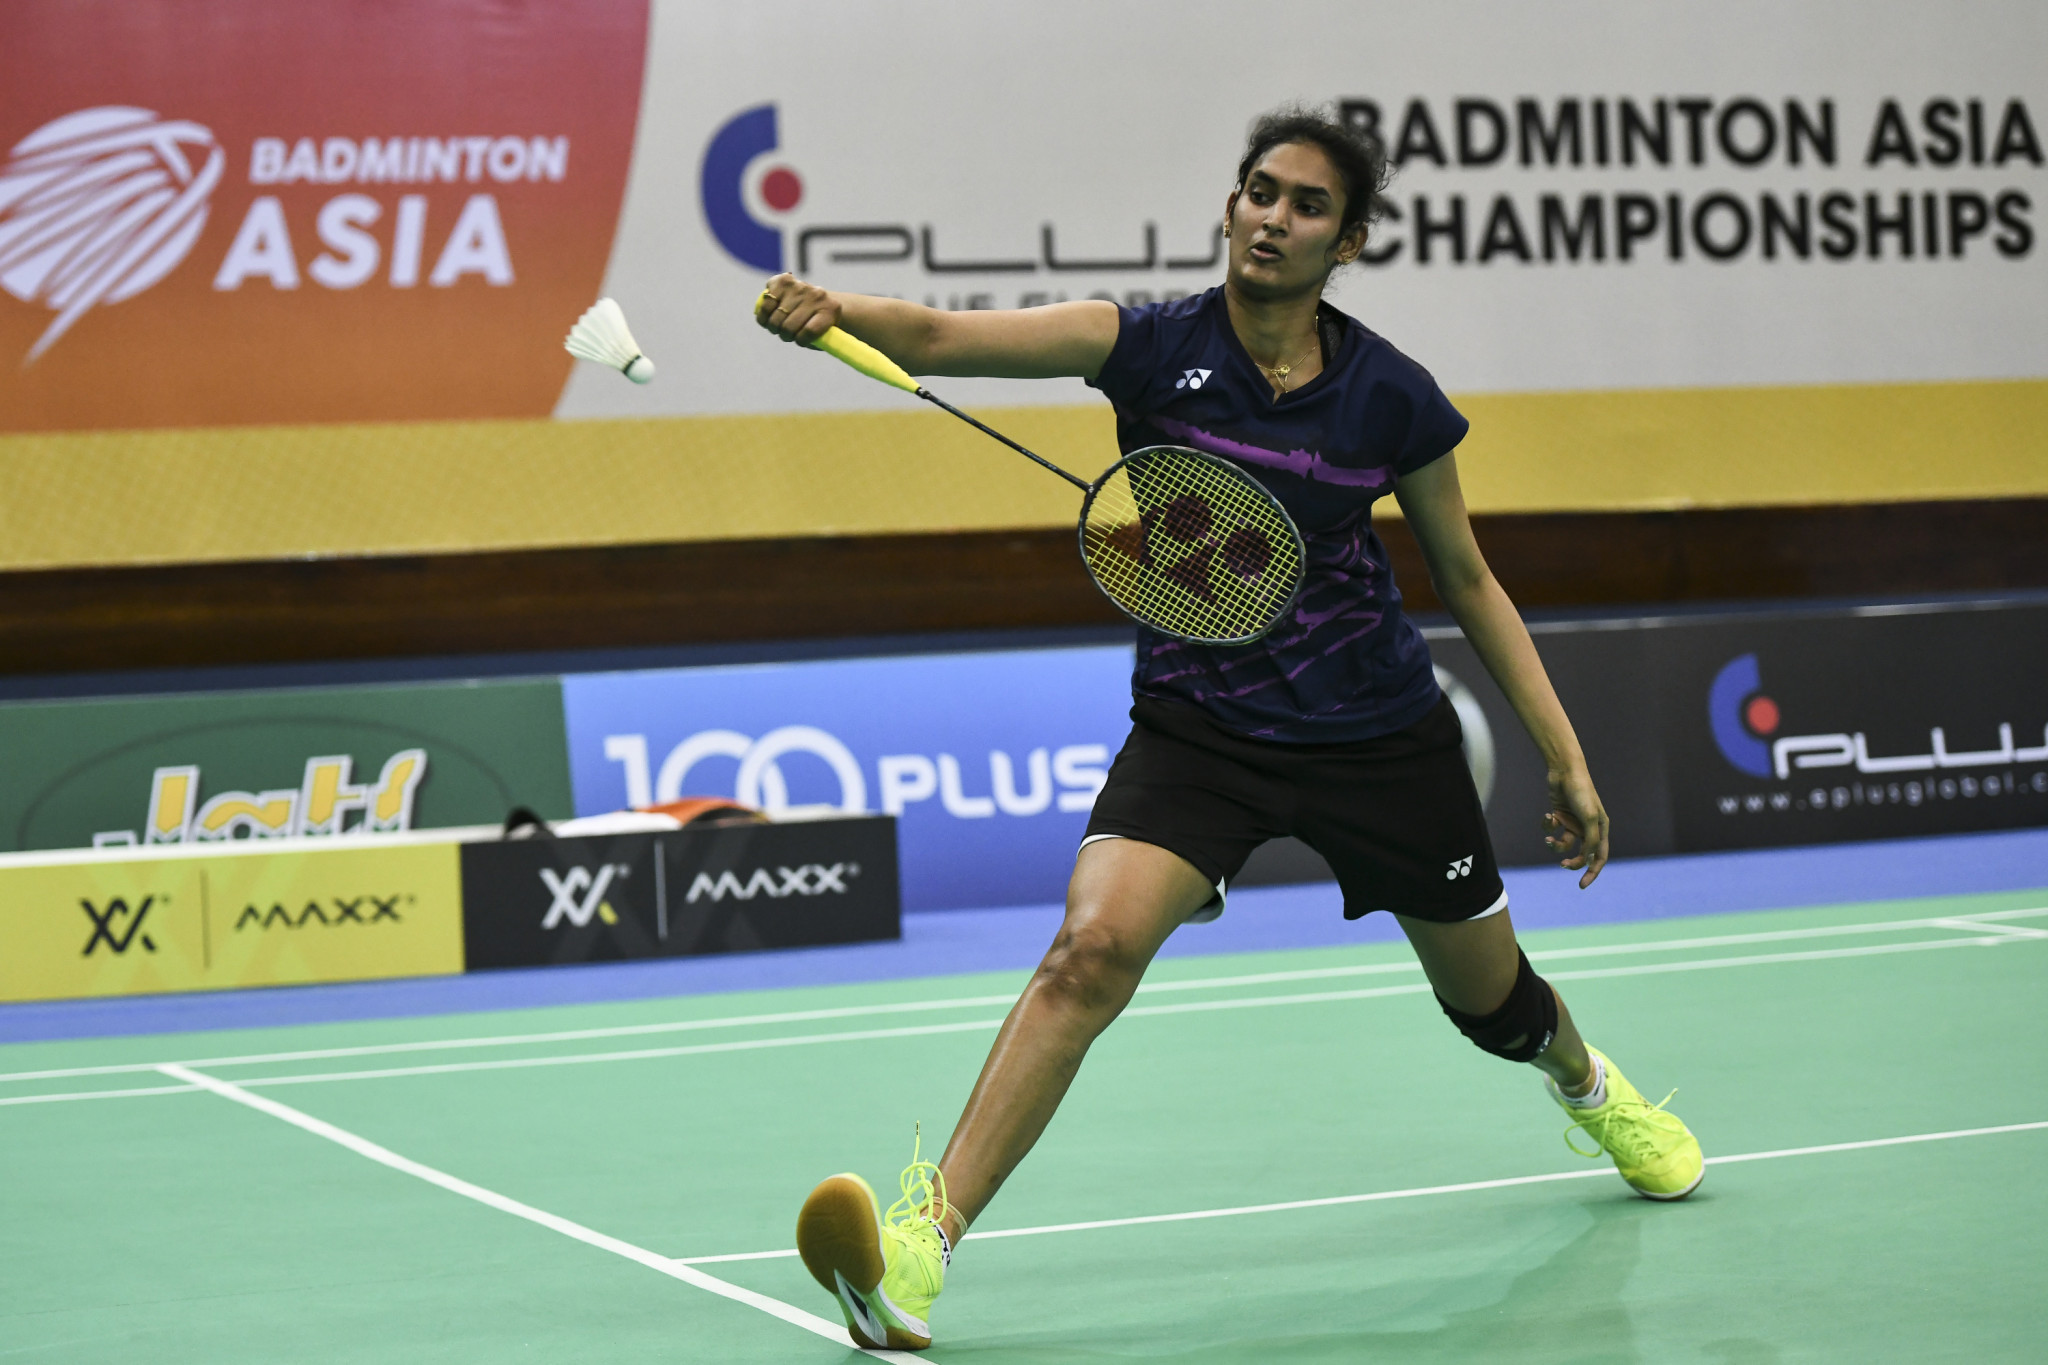 India survive scare on opening day of Badminton Asia Team Championships